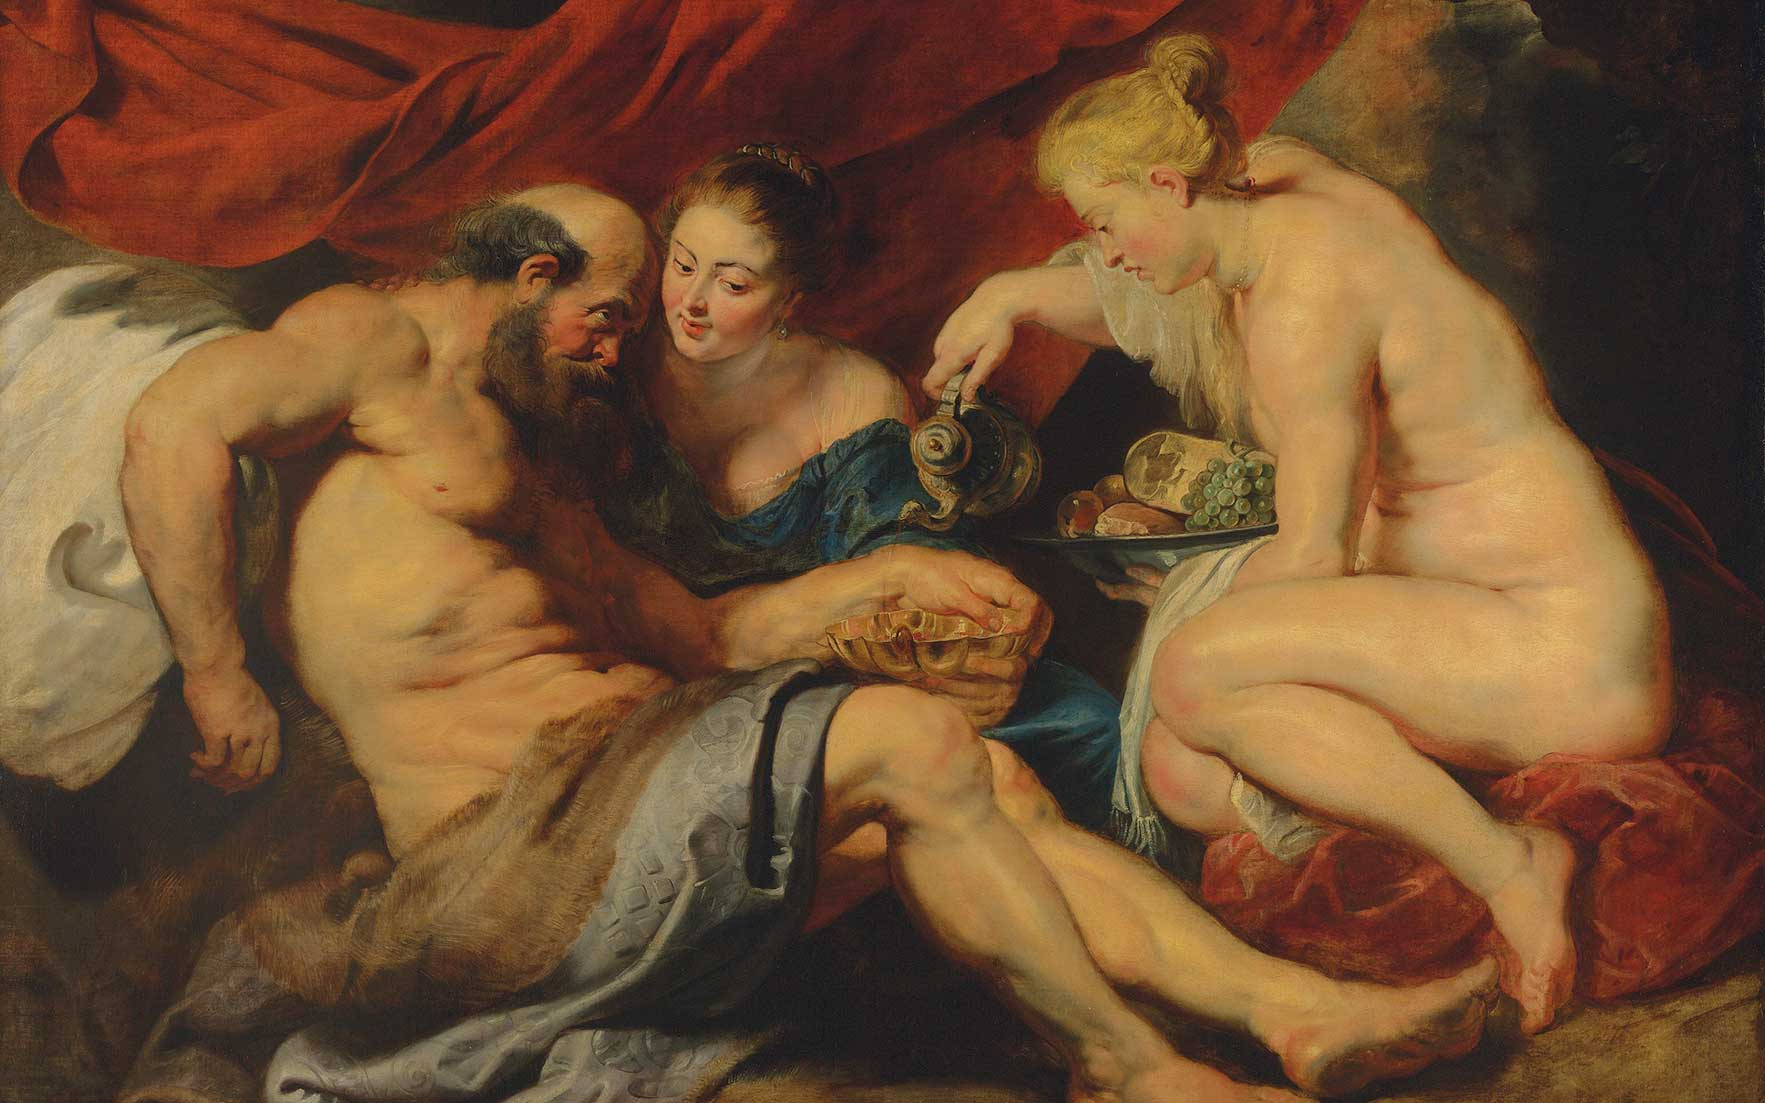 Rubens masterpiece Lot and his Daughters to lead in London